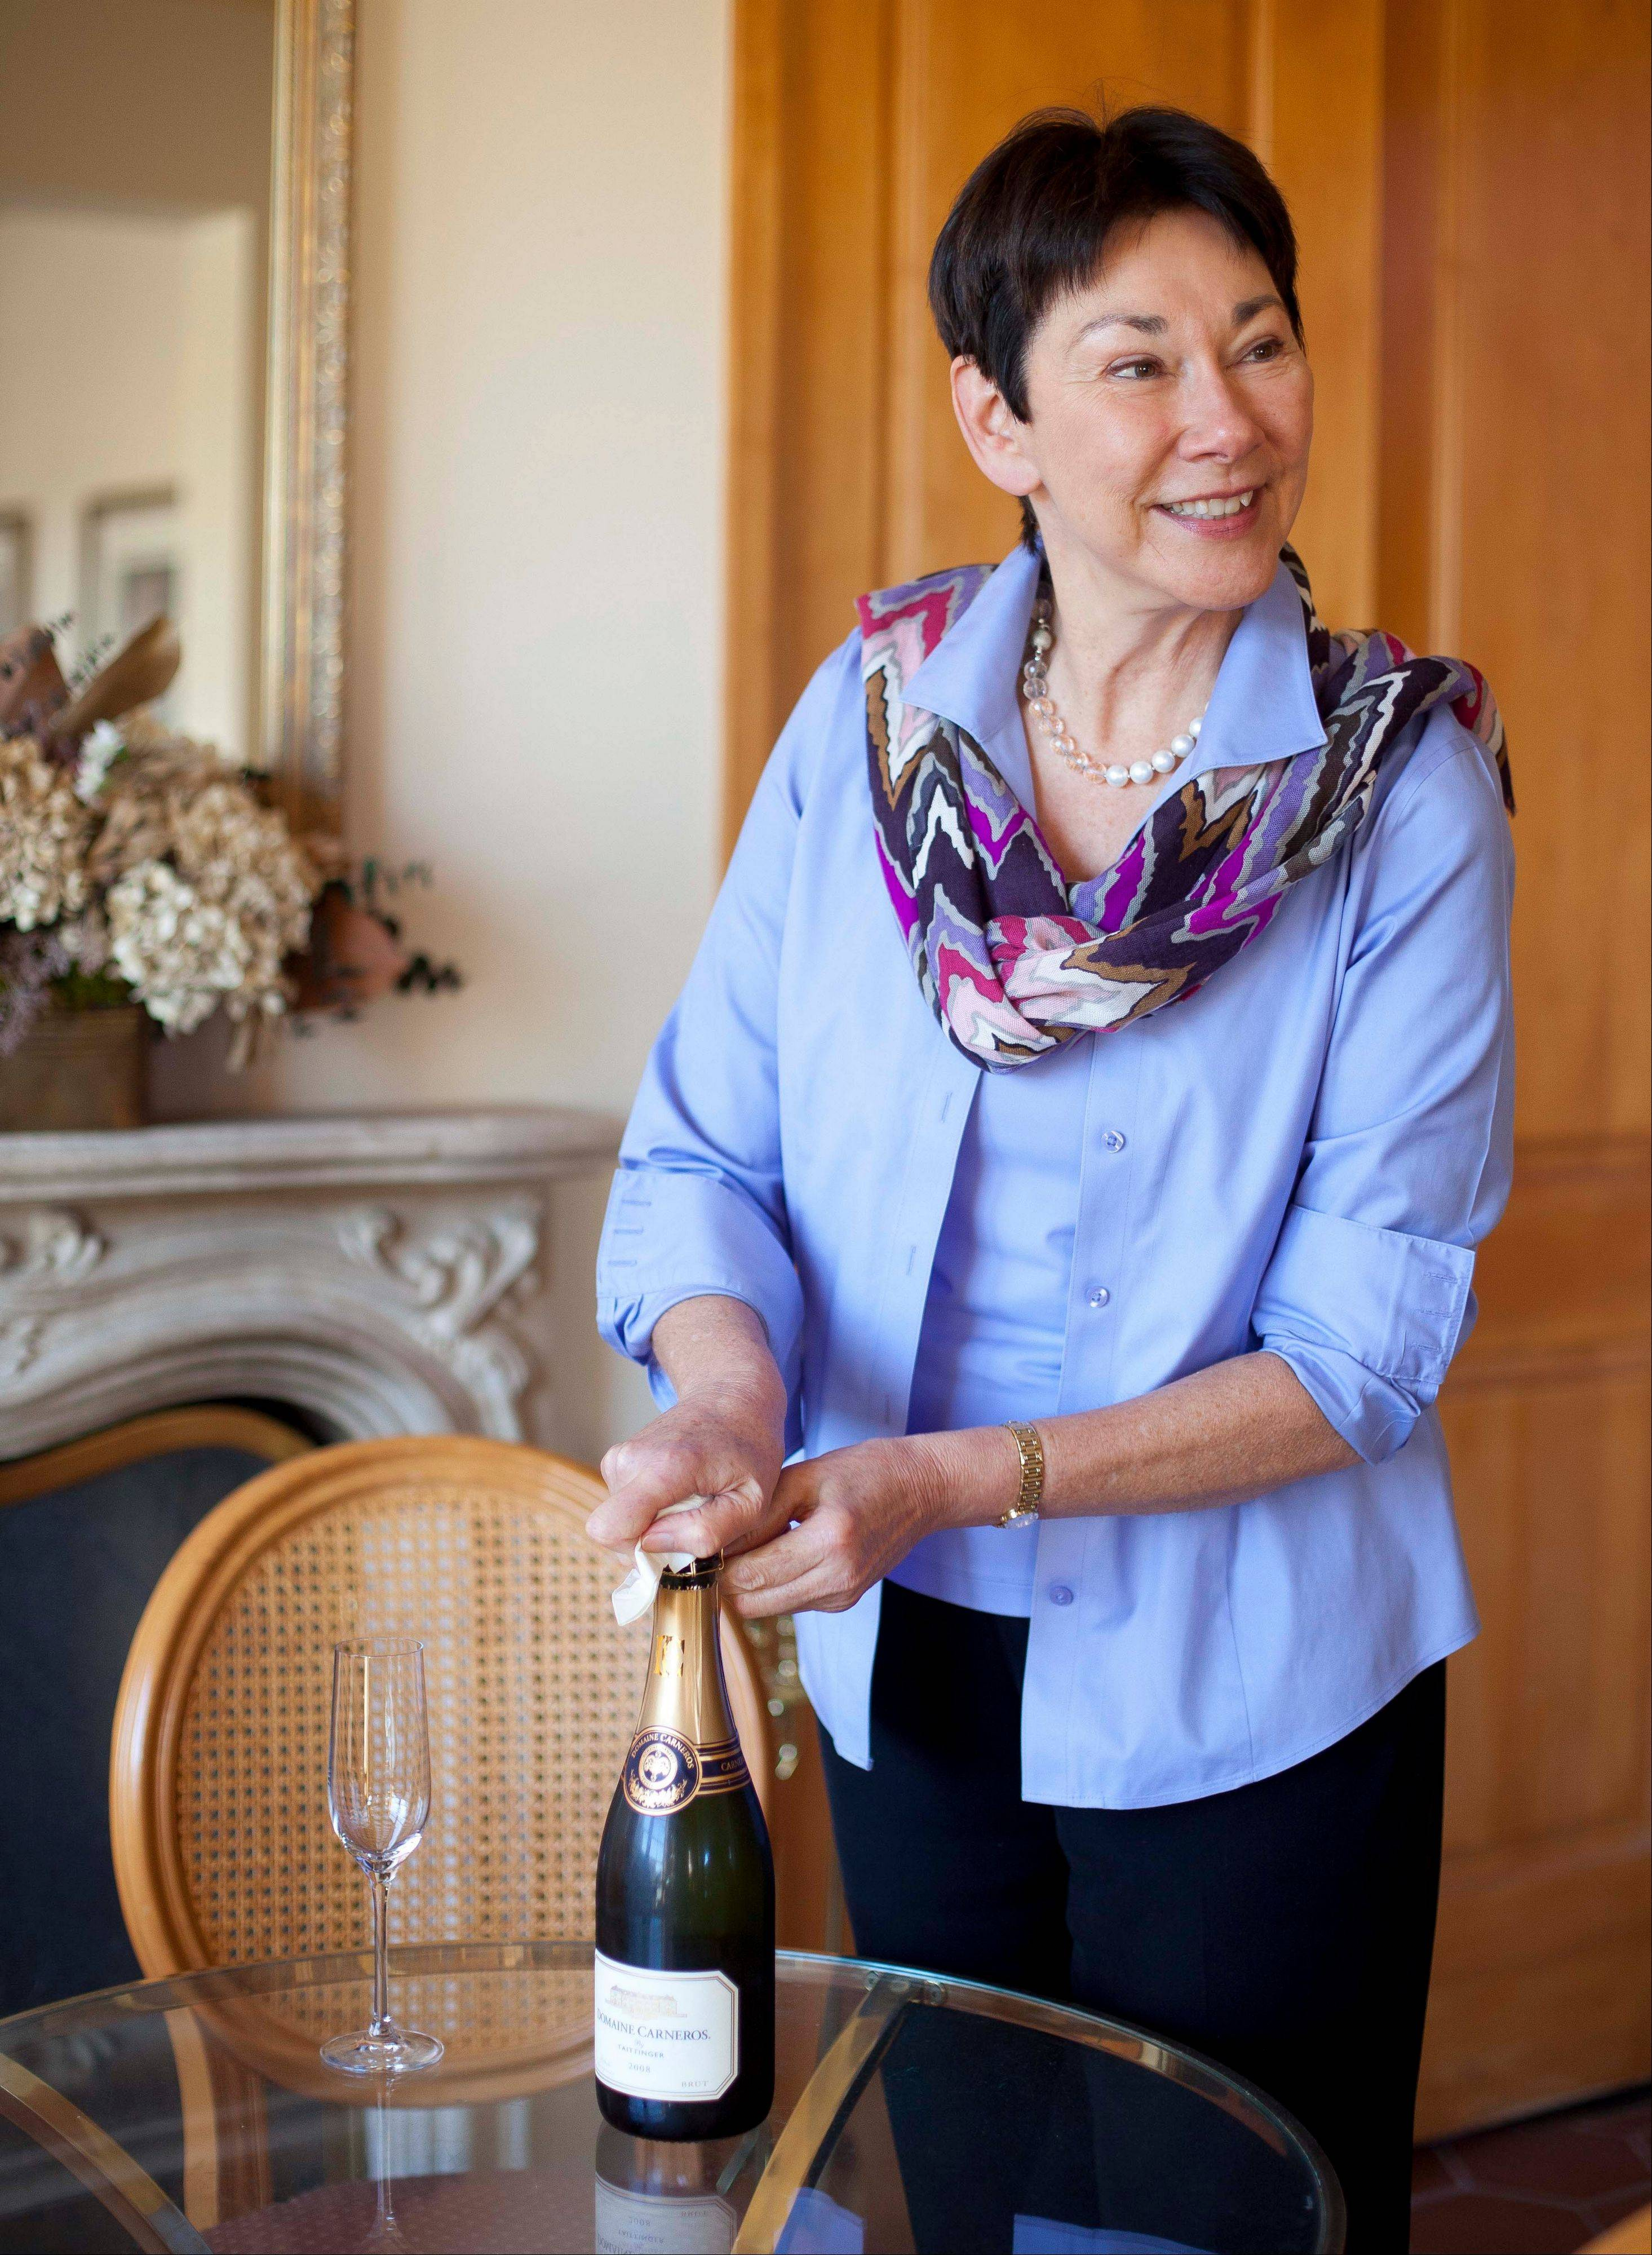 CEO and winemaker Eileen Crane opens a bottle of Brut Cuvee sparkling wine at Domaine Carneros in Napa, Calif. She's a fan of using sparkling wine is cocktails.